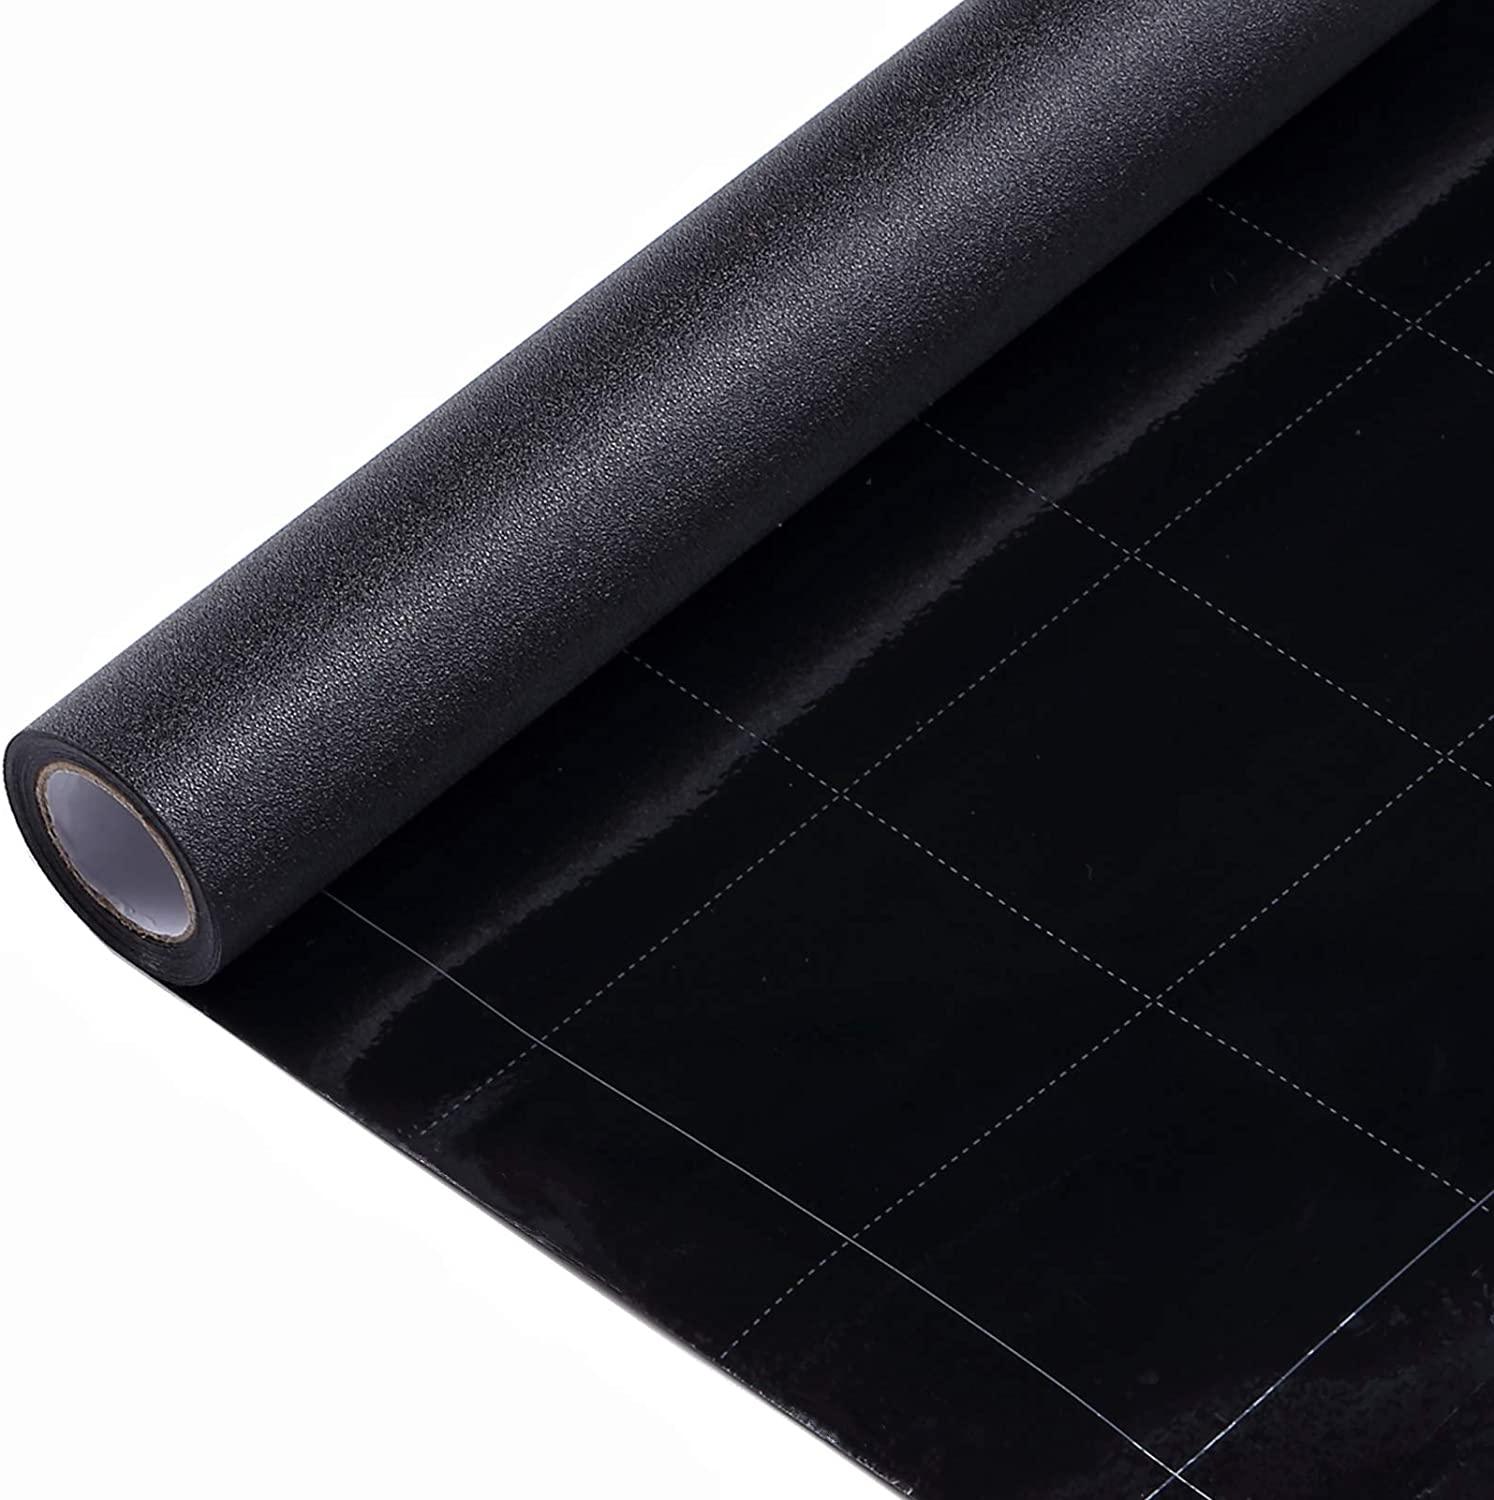 VELIMAX Our shop OFFers the best service Static Cling Total Blackout Room Dar Privacy Window Film sold out